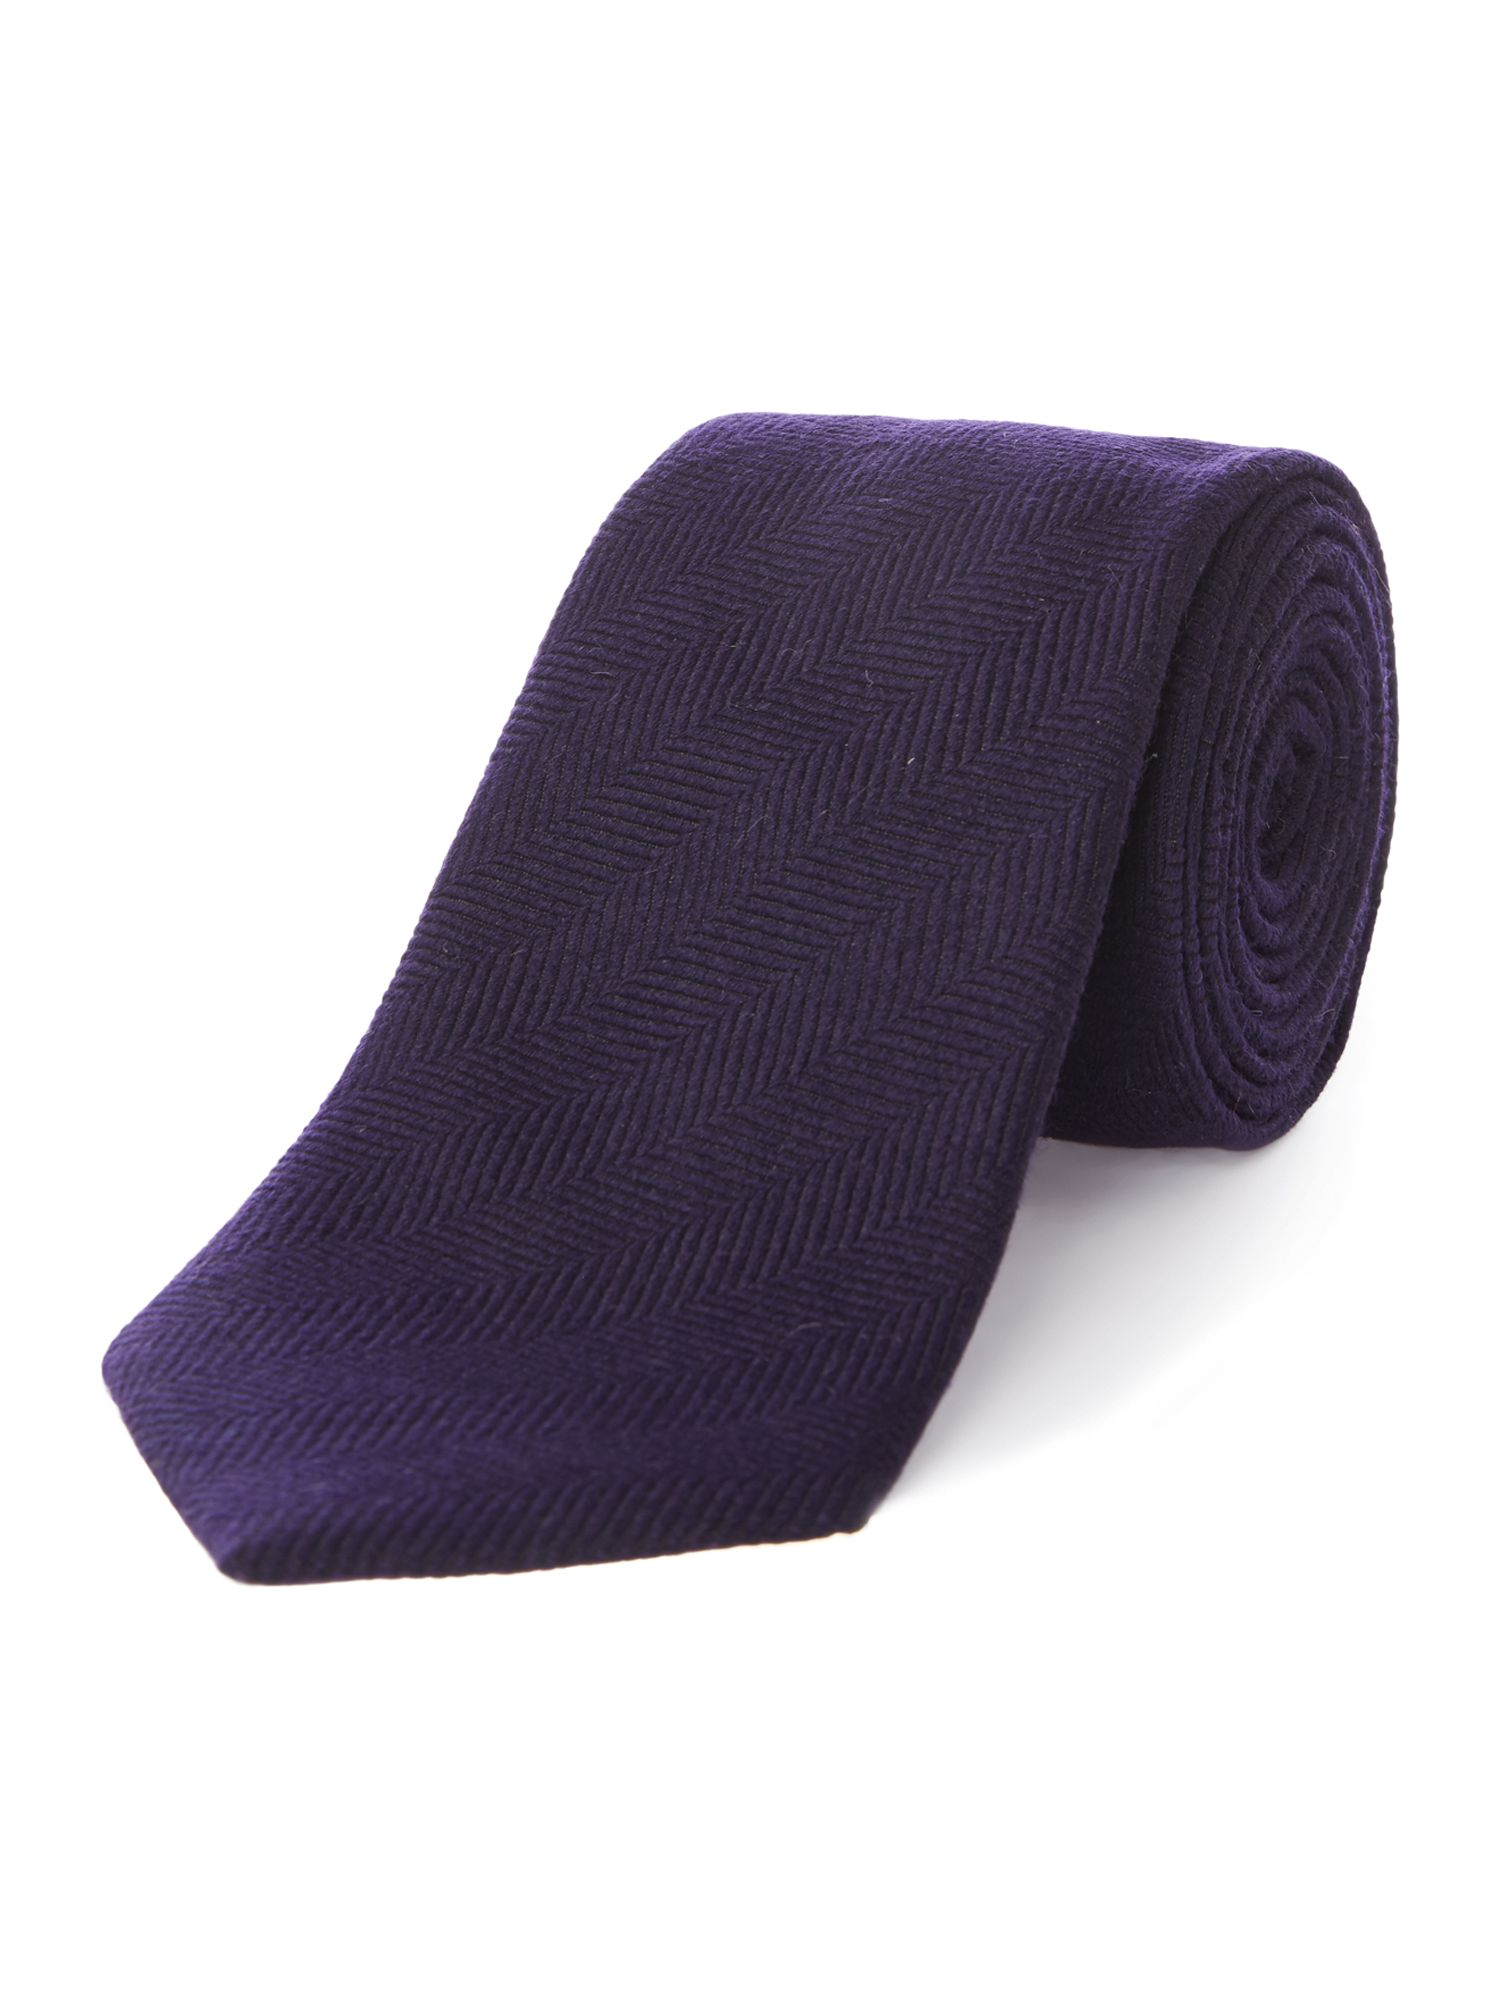 Clearvon wool herringbone tie